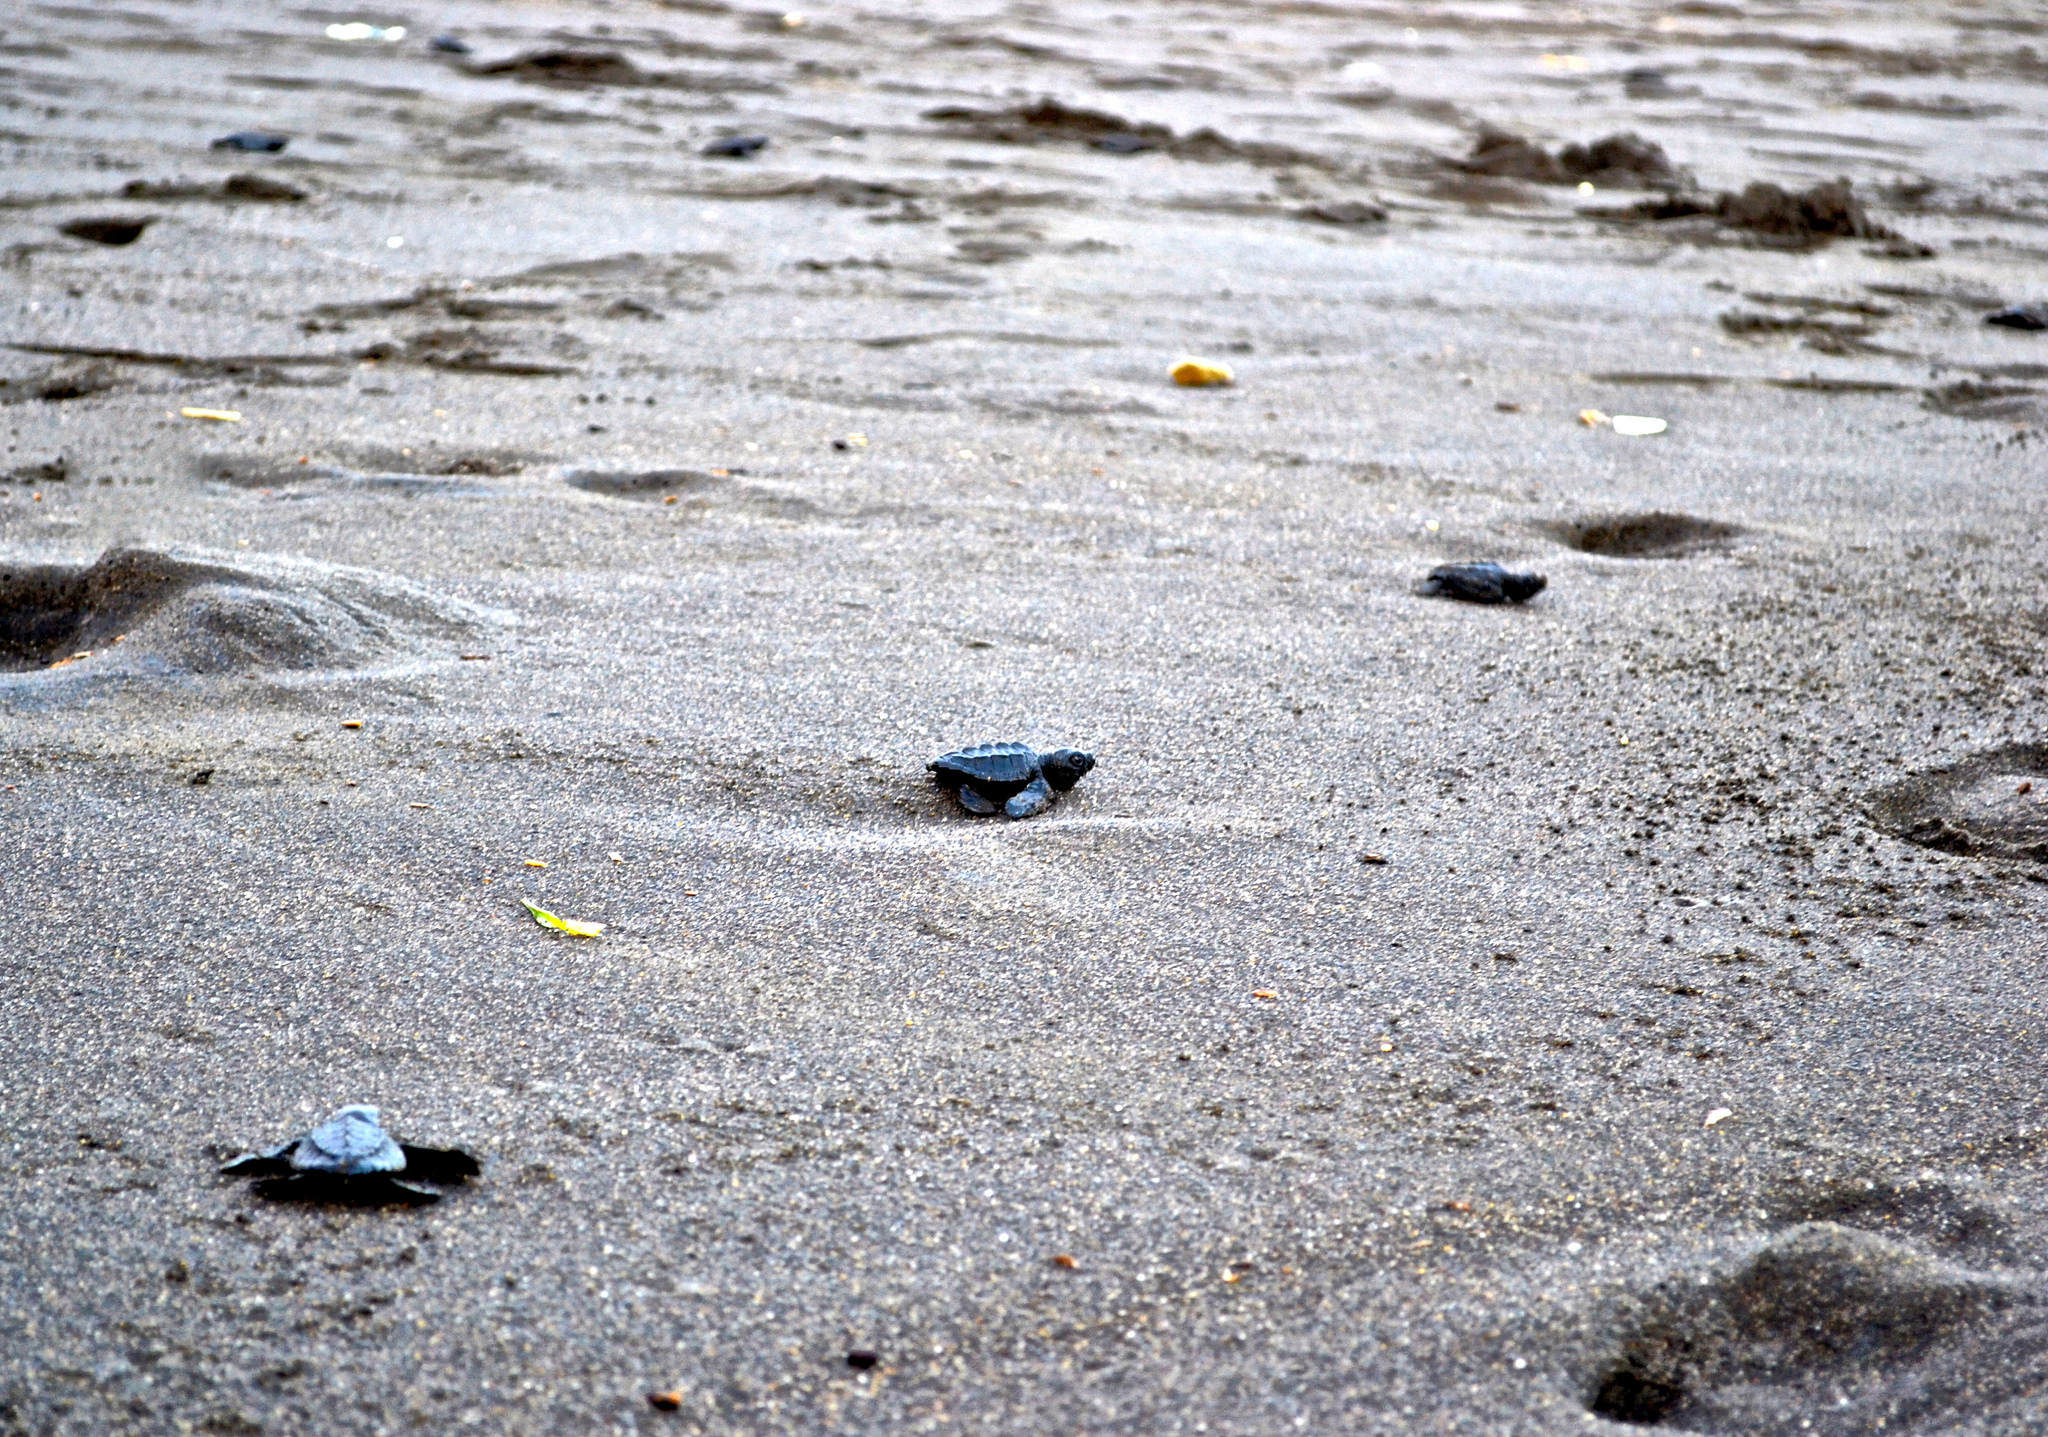 Baby Sea Turtles searching their way to the sea.